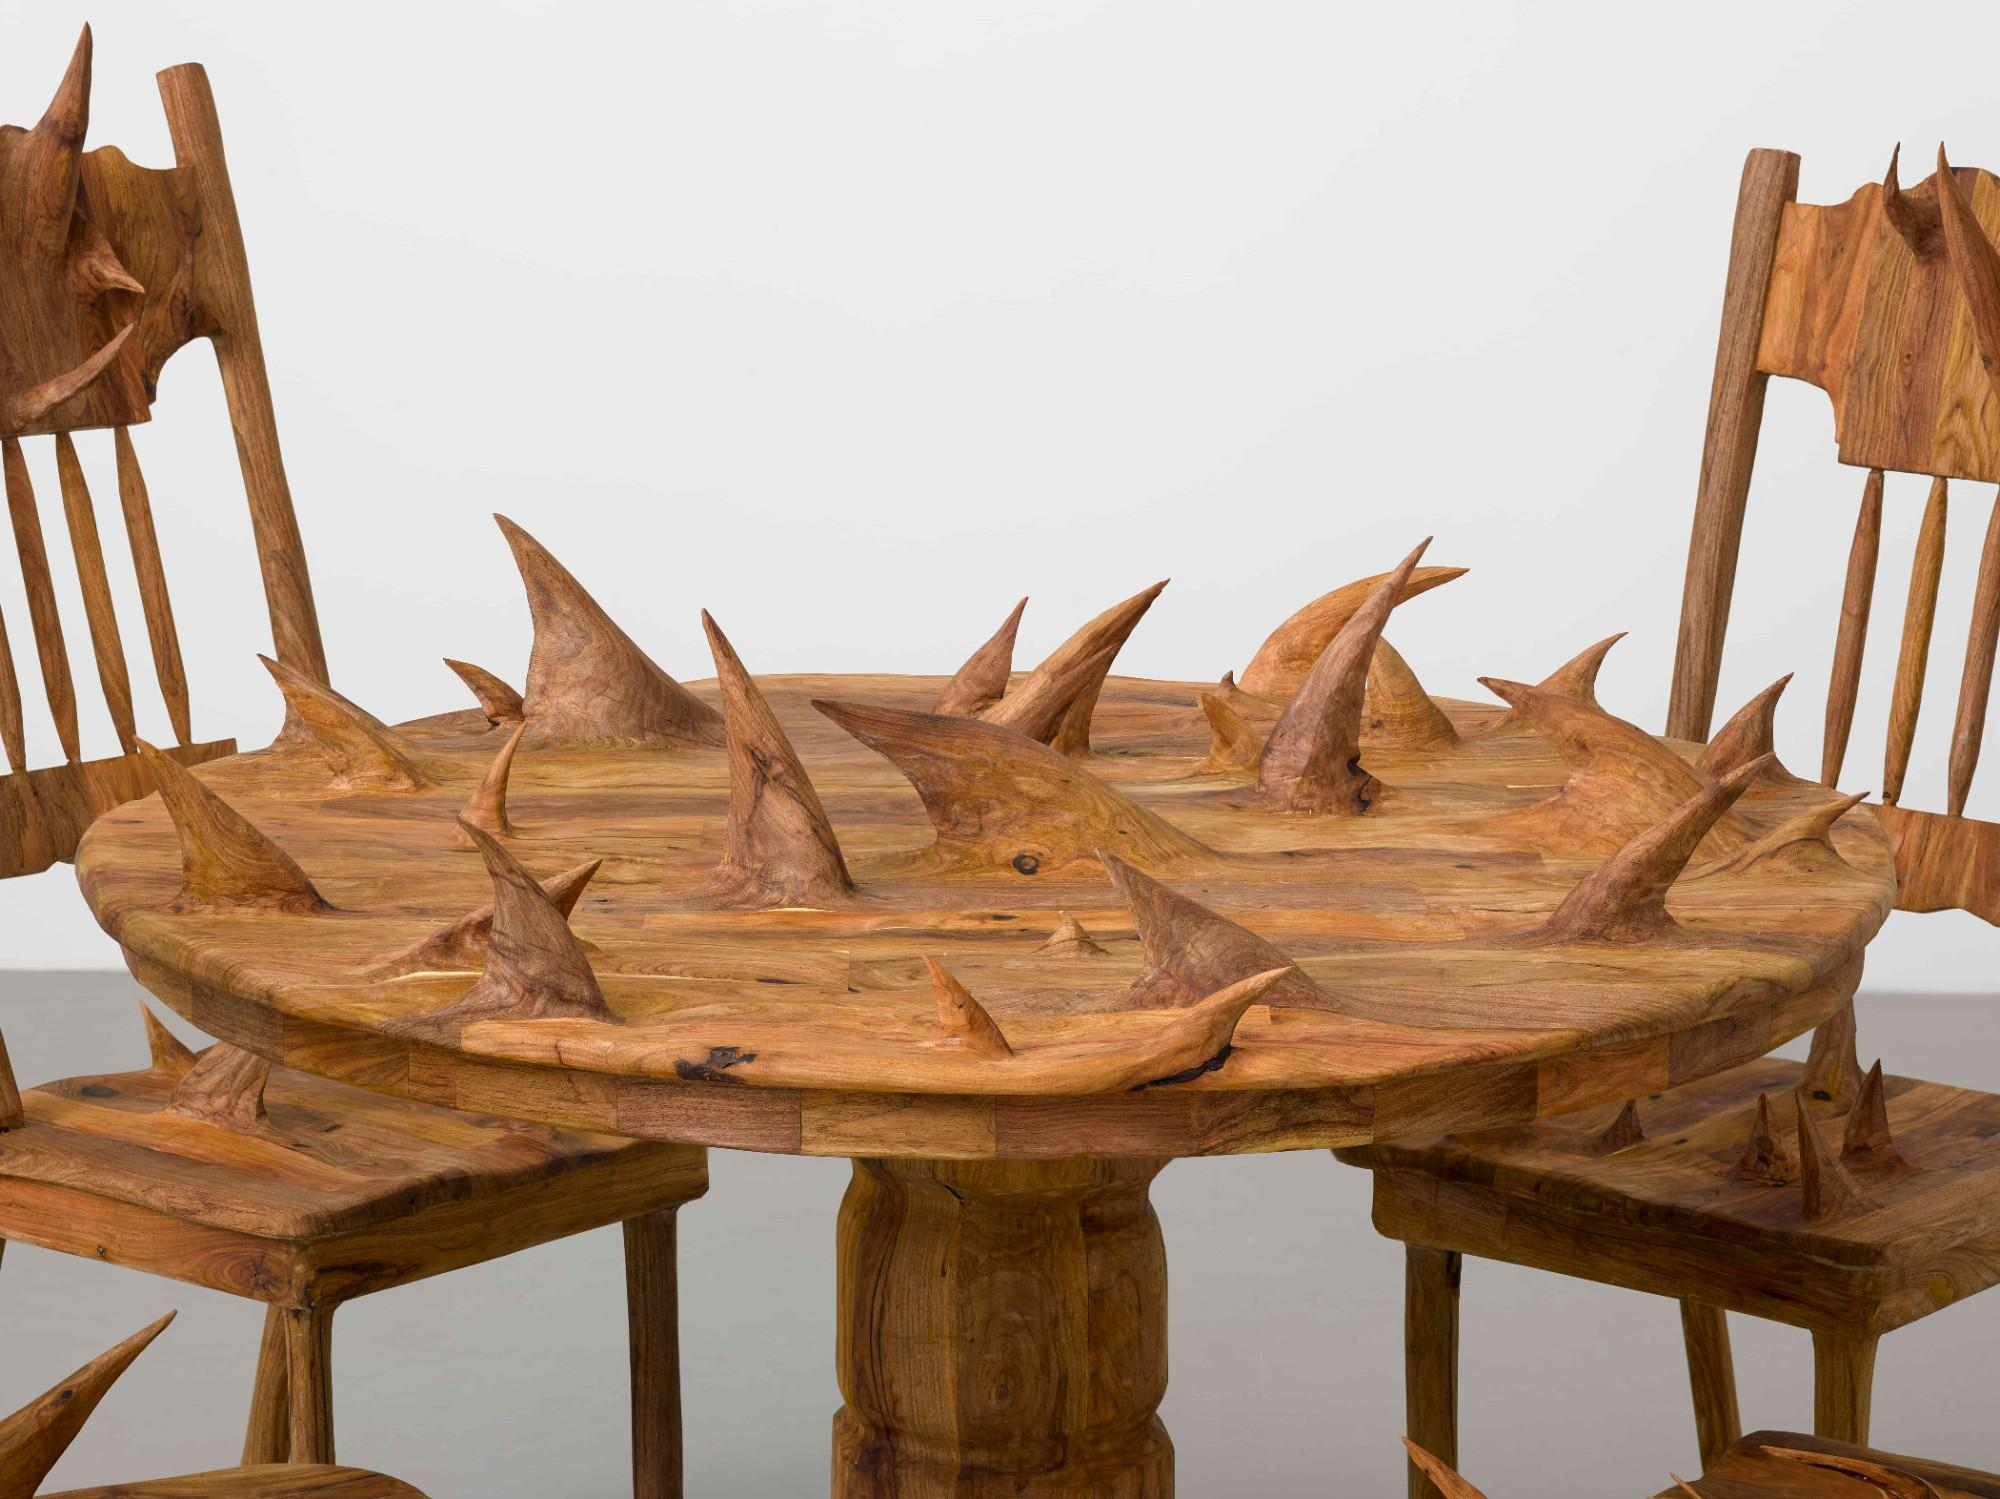 a circular wooden table and chairs, all covered in large thorny protrusions